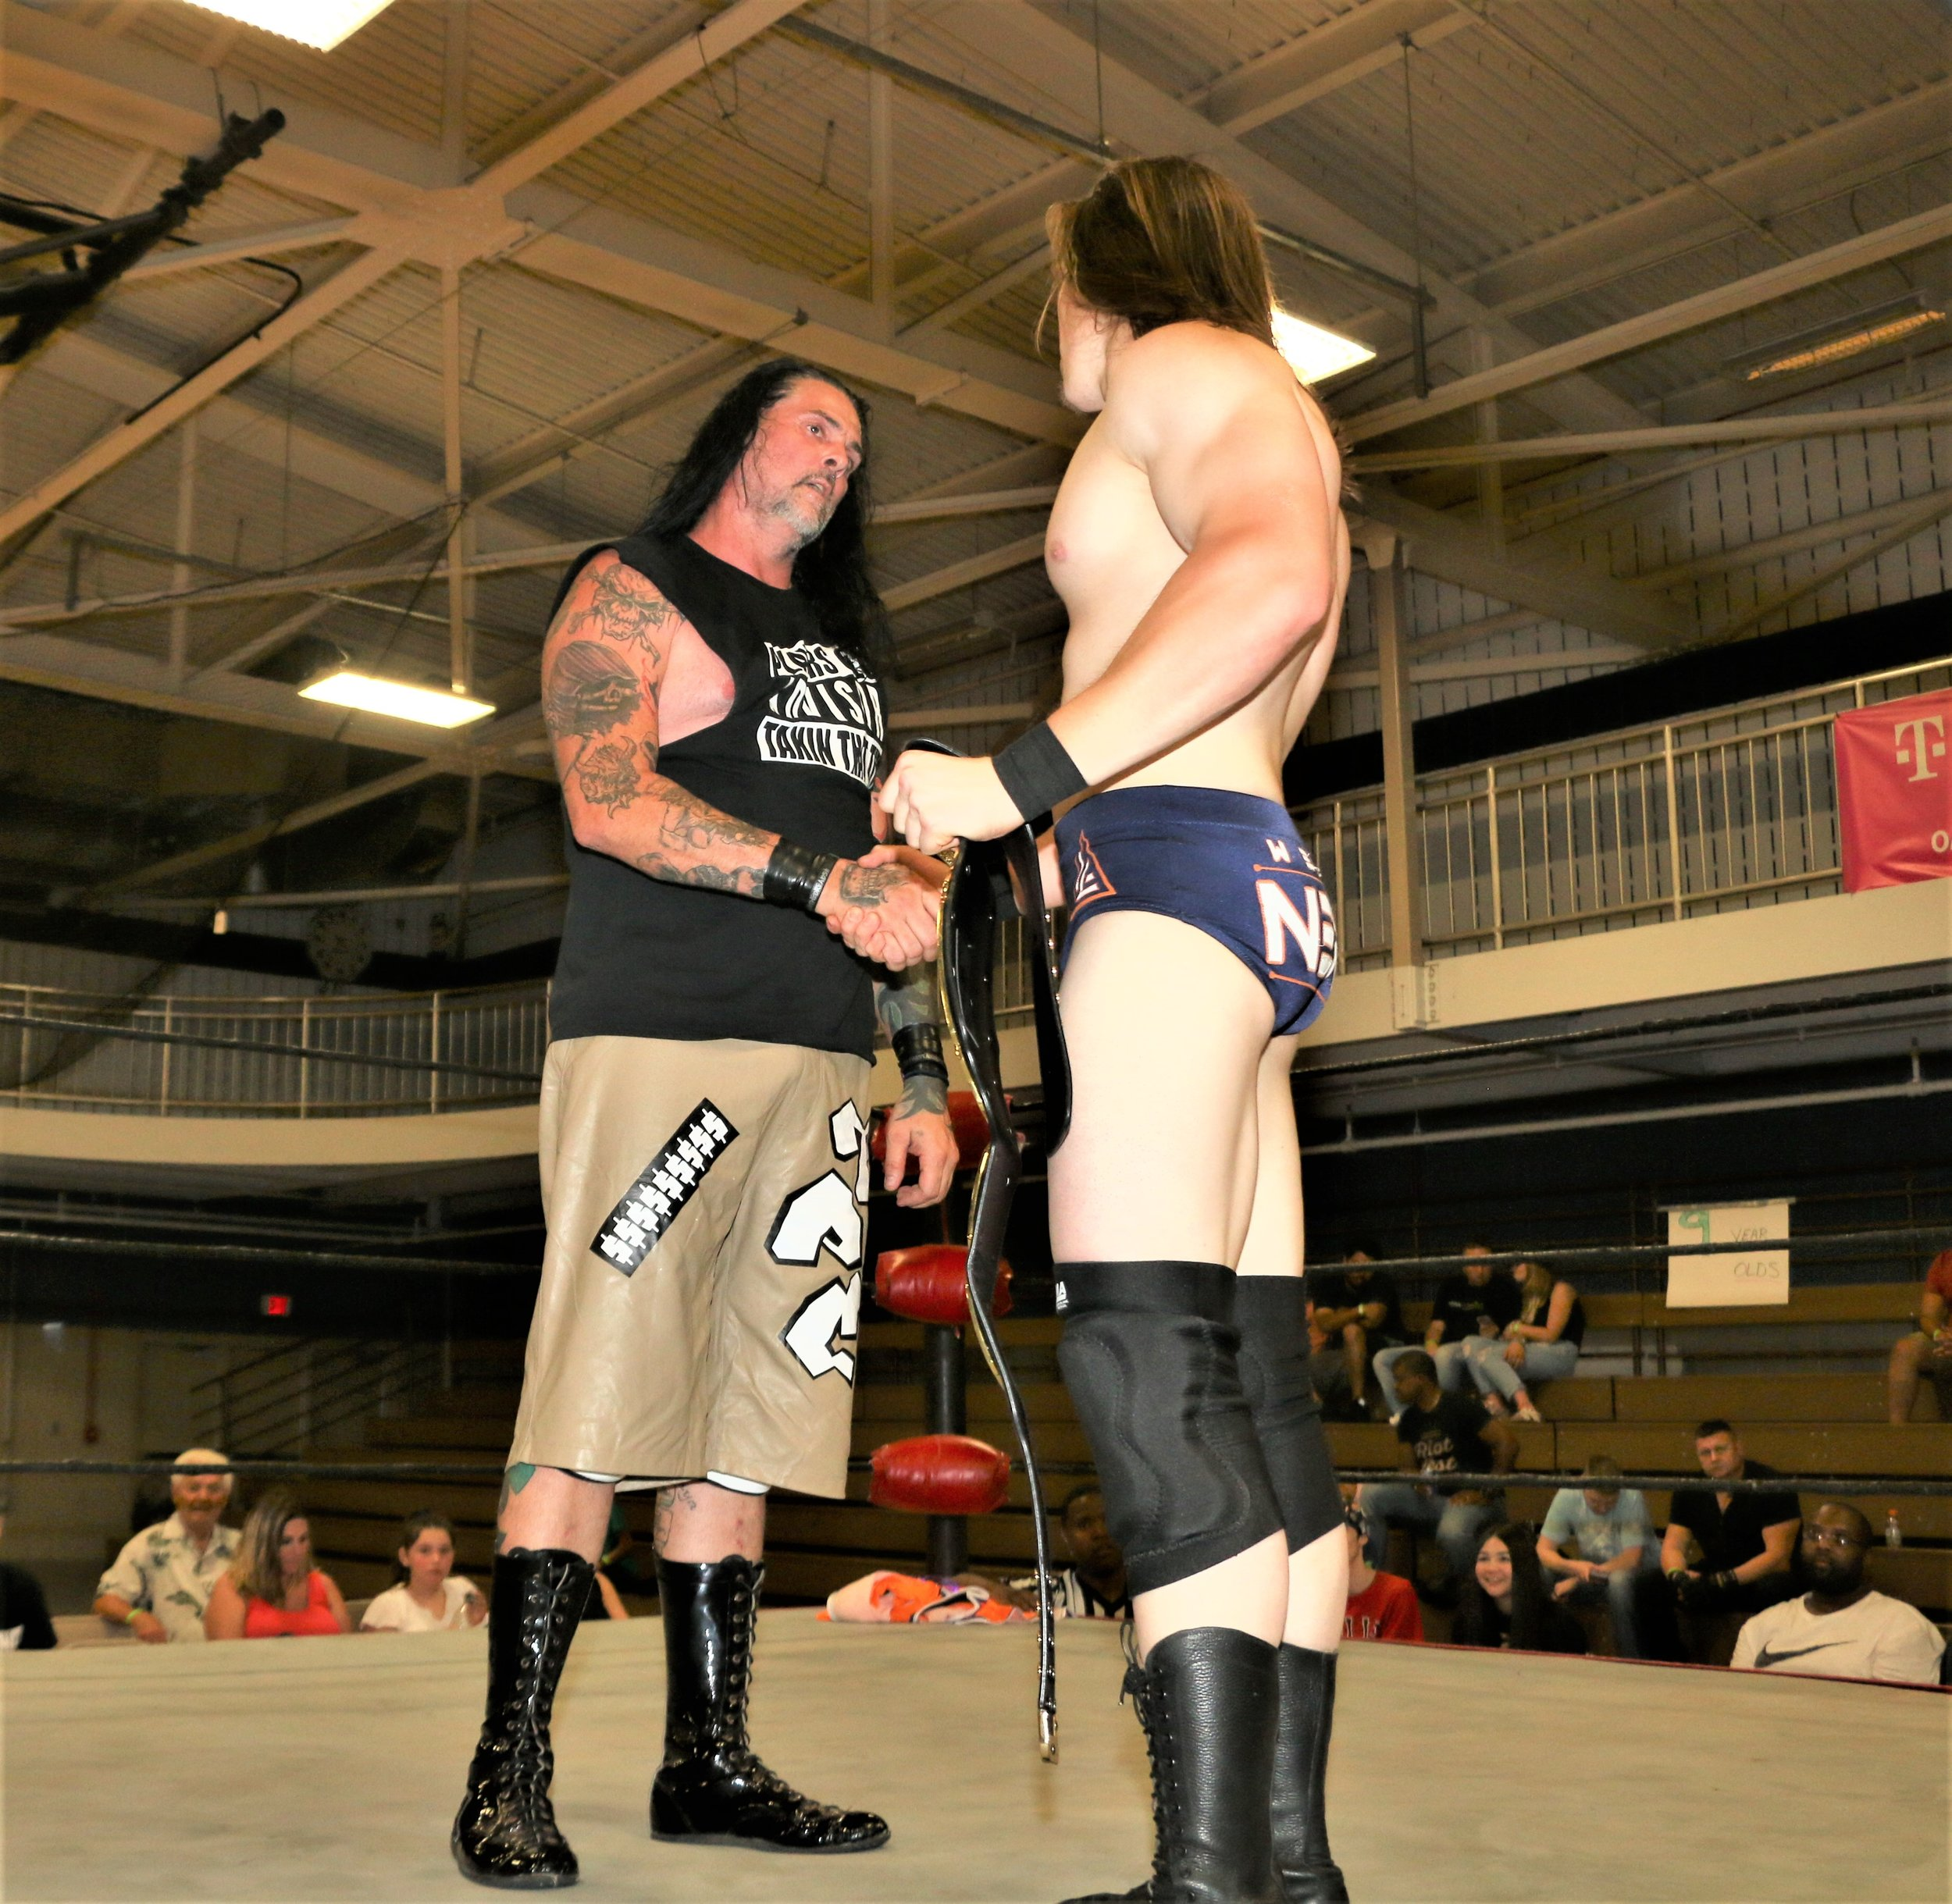 J Ca$h shakes the hand of Frontline Pro Champion Logan Lynch after the match.